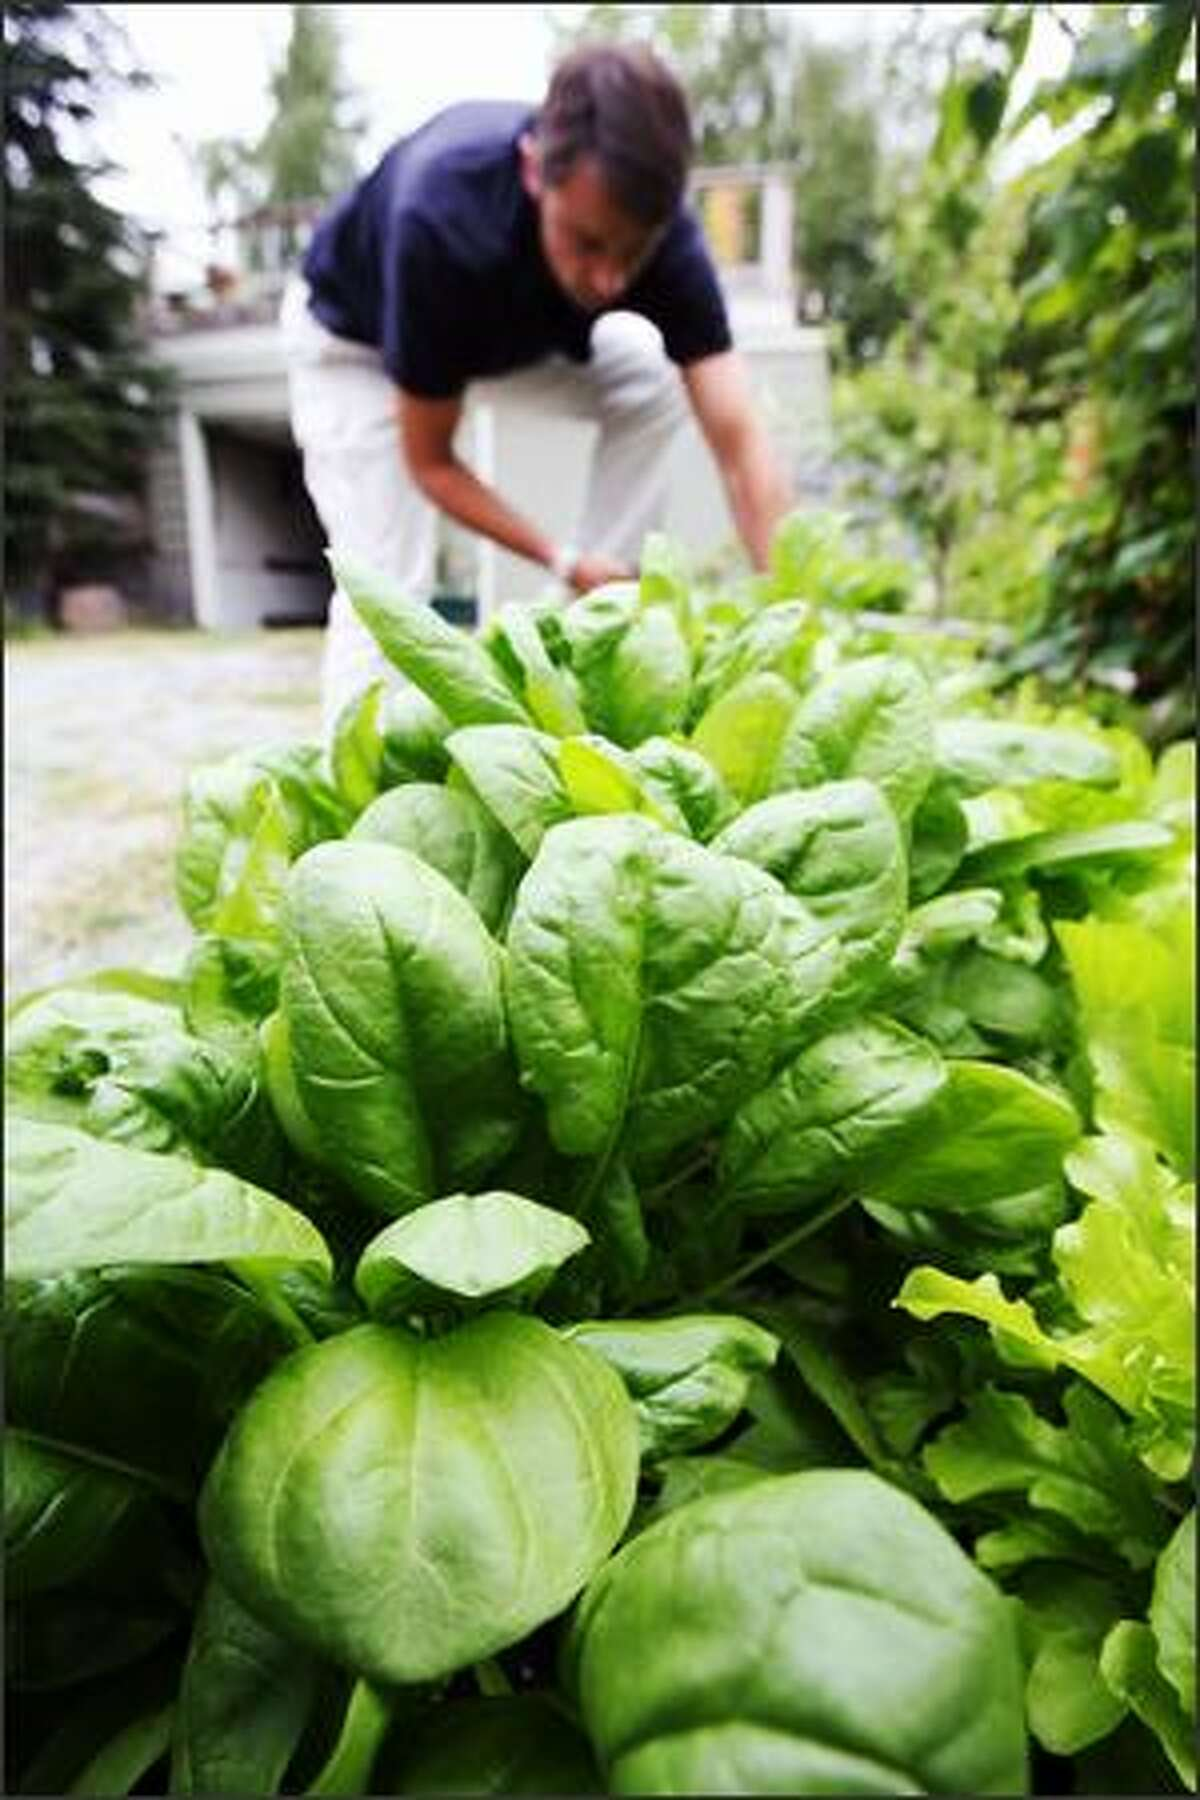 Brent Roraback, Lisa's husband, picks greens for a salad.